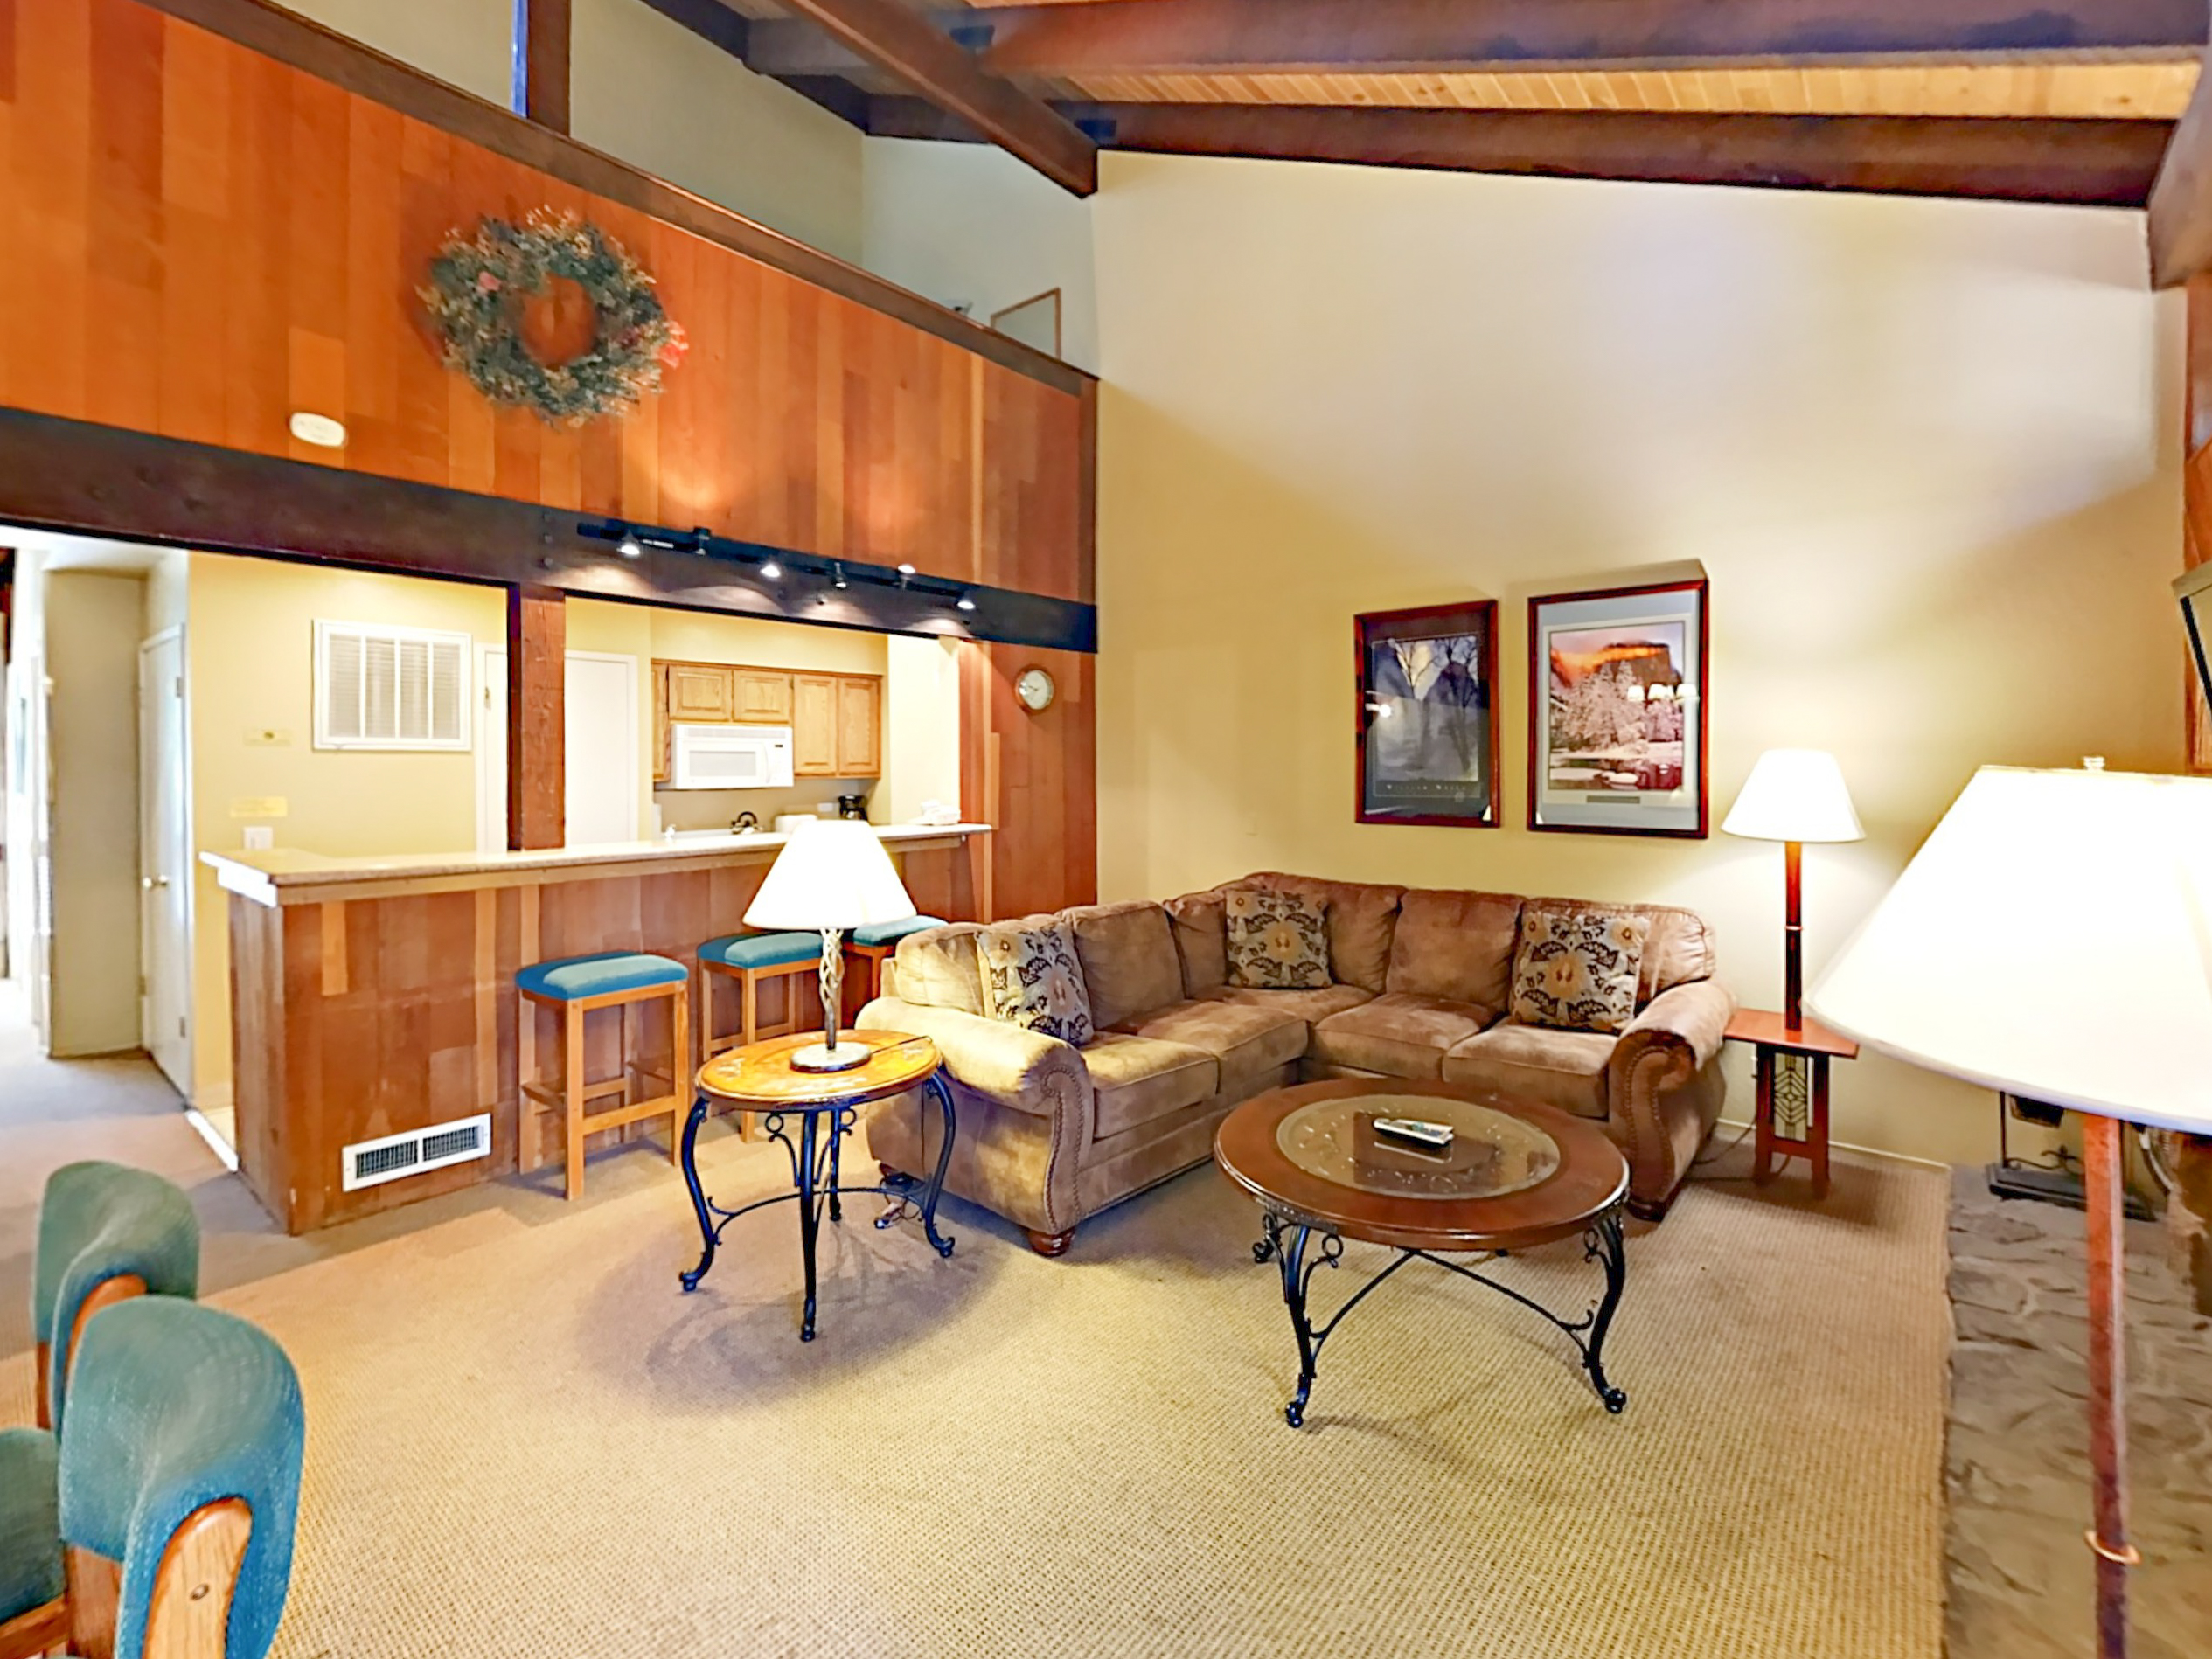 South Lake Tahoe CA Vacation Rental The open-concept living